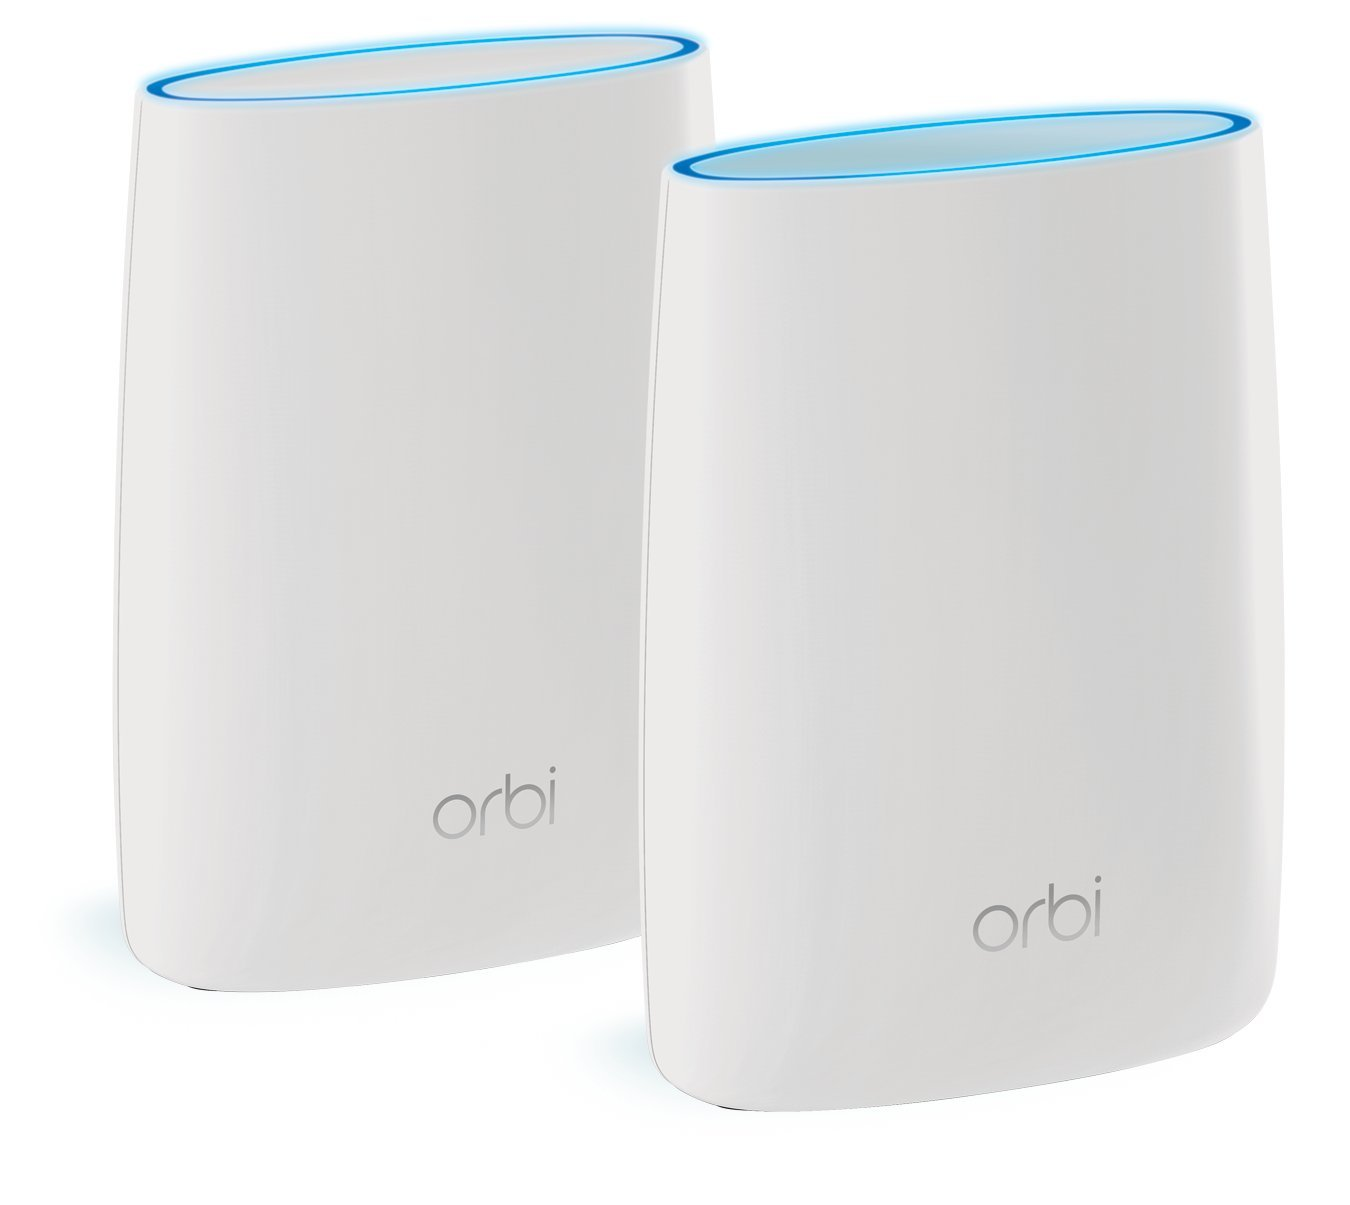 Orbi Home WiFi System by NETGEAR. Better WiFi Everywhere with 3 Gigabit Speed, Tri-Band Mesh WiFi, Easy Setup, Replaces WiFi Range Extenders